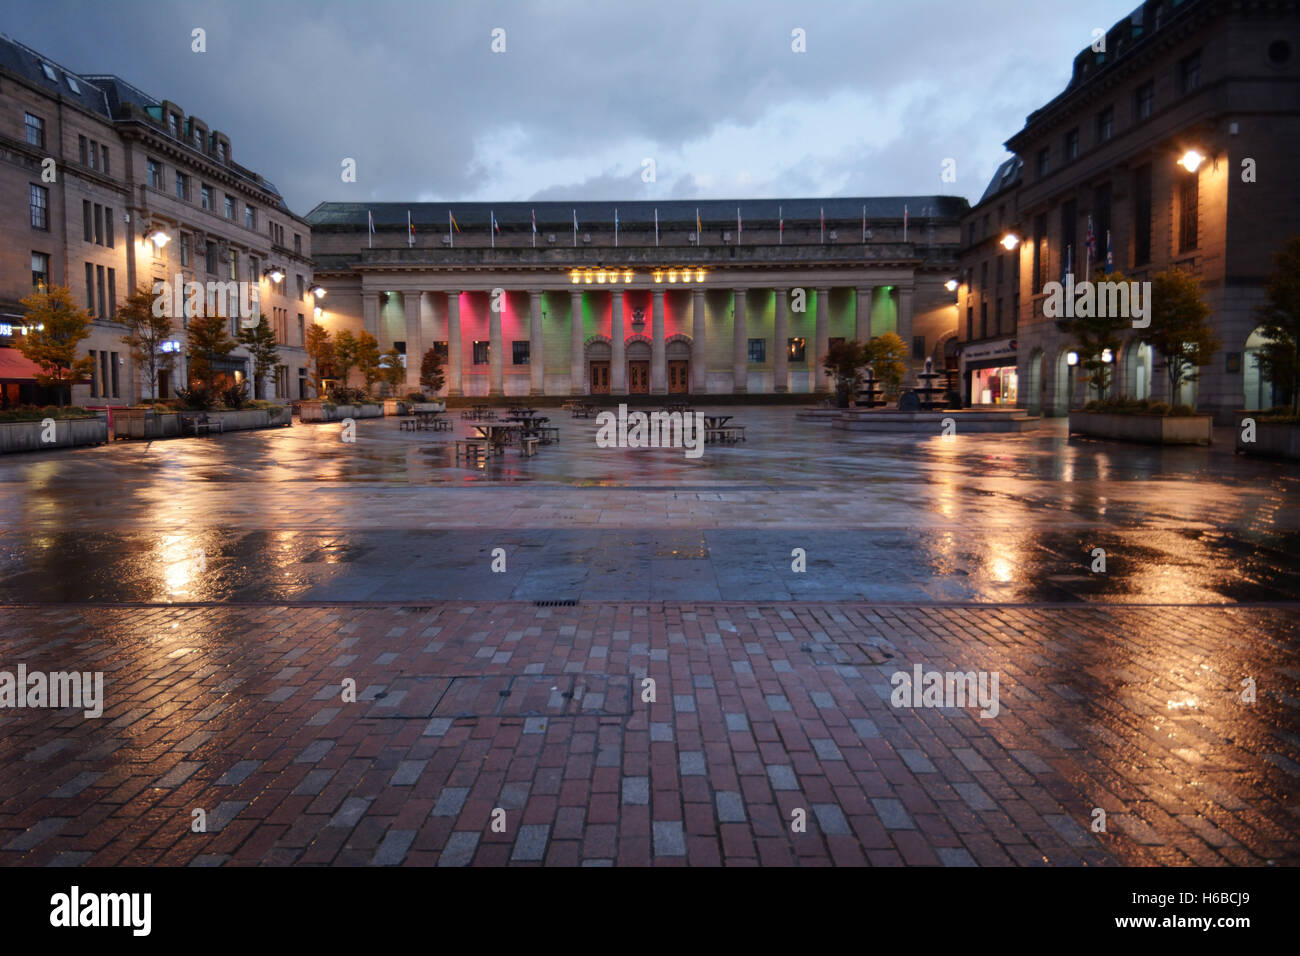 United Kingdom, Scotland, Dundee, the City Square, downtown, late evening - Stock Image